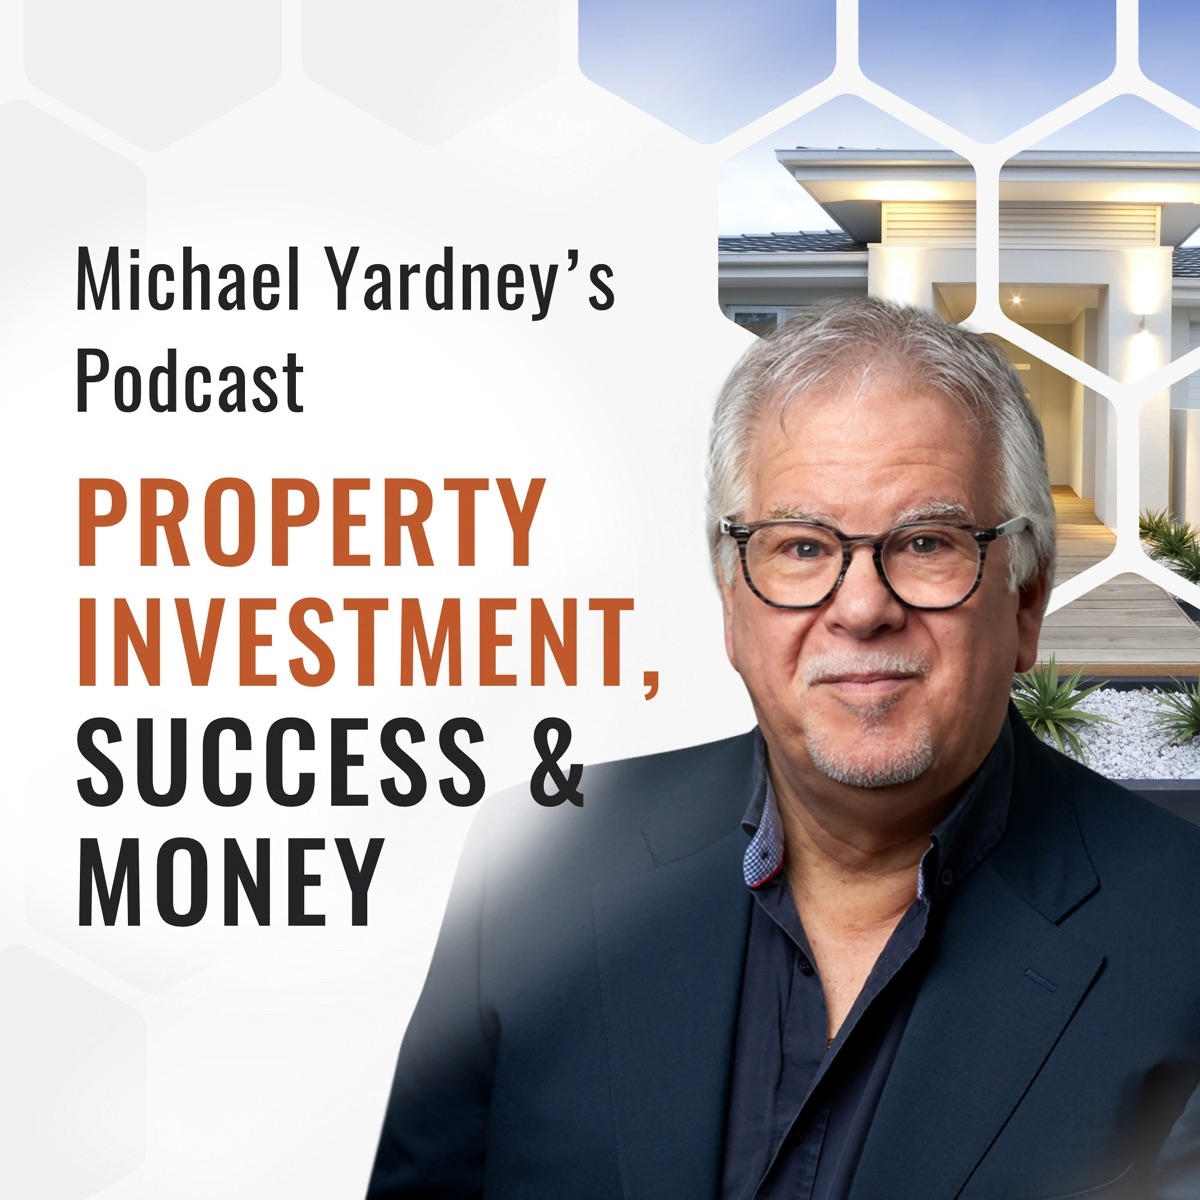 The Michael Yardney Podcast